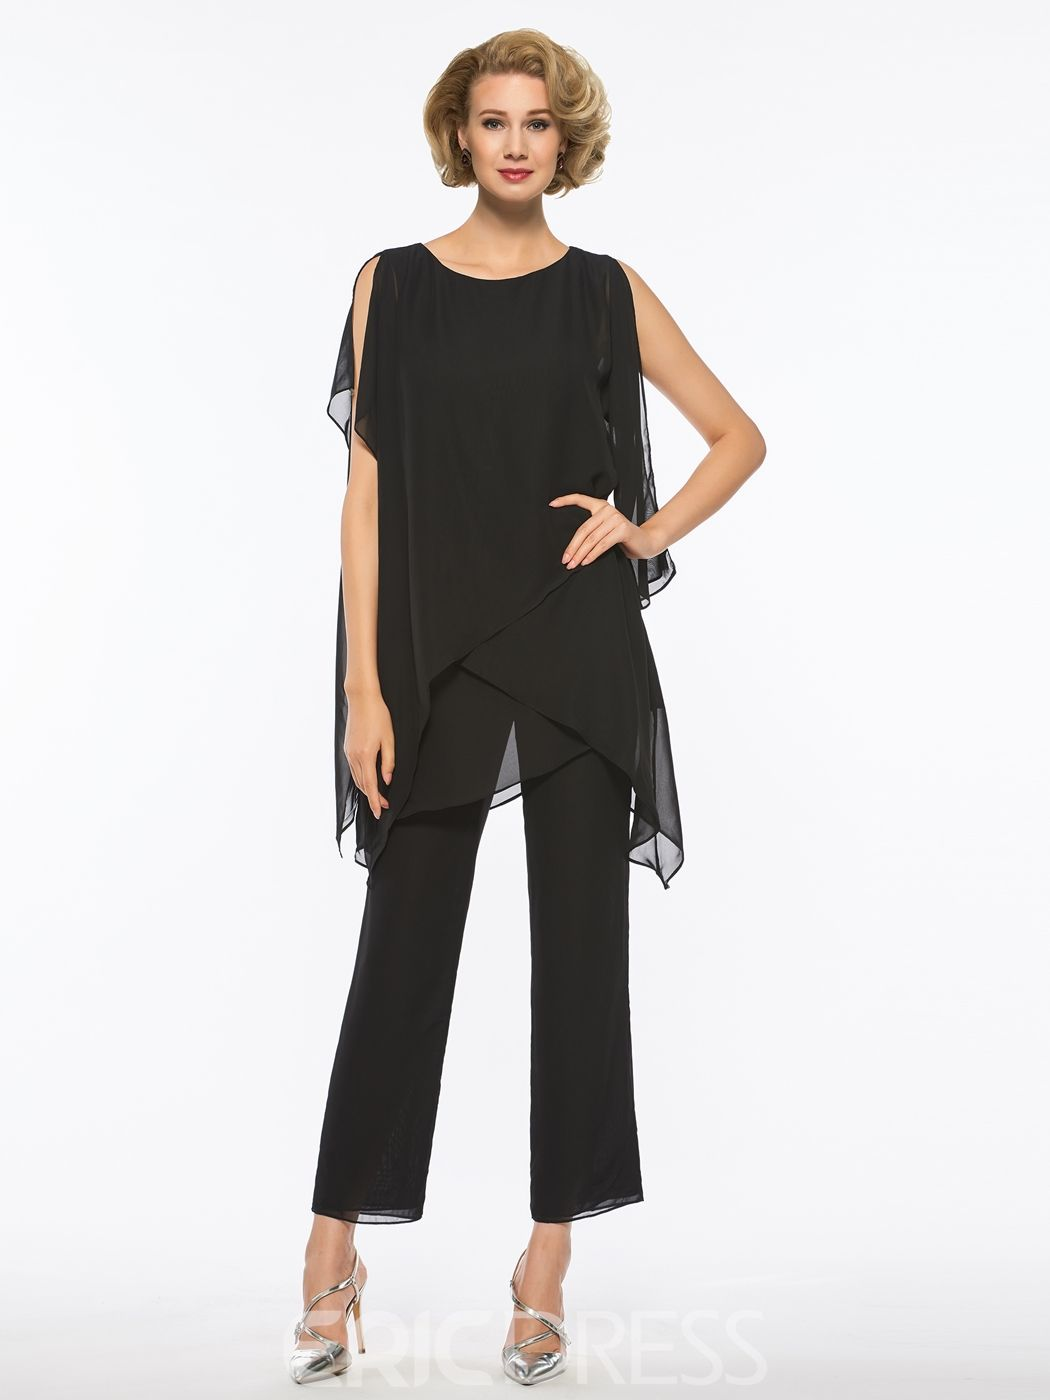 Dresses to wear to a wedding as a guest over 50  Scoop Chiffon Mother of The Bride Jumpsuit  Mother of the Bride